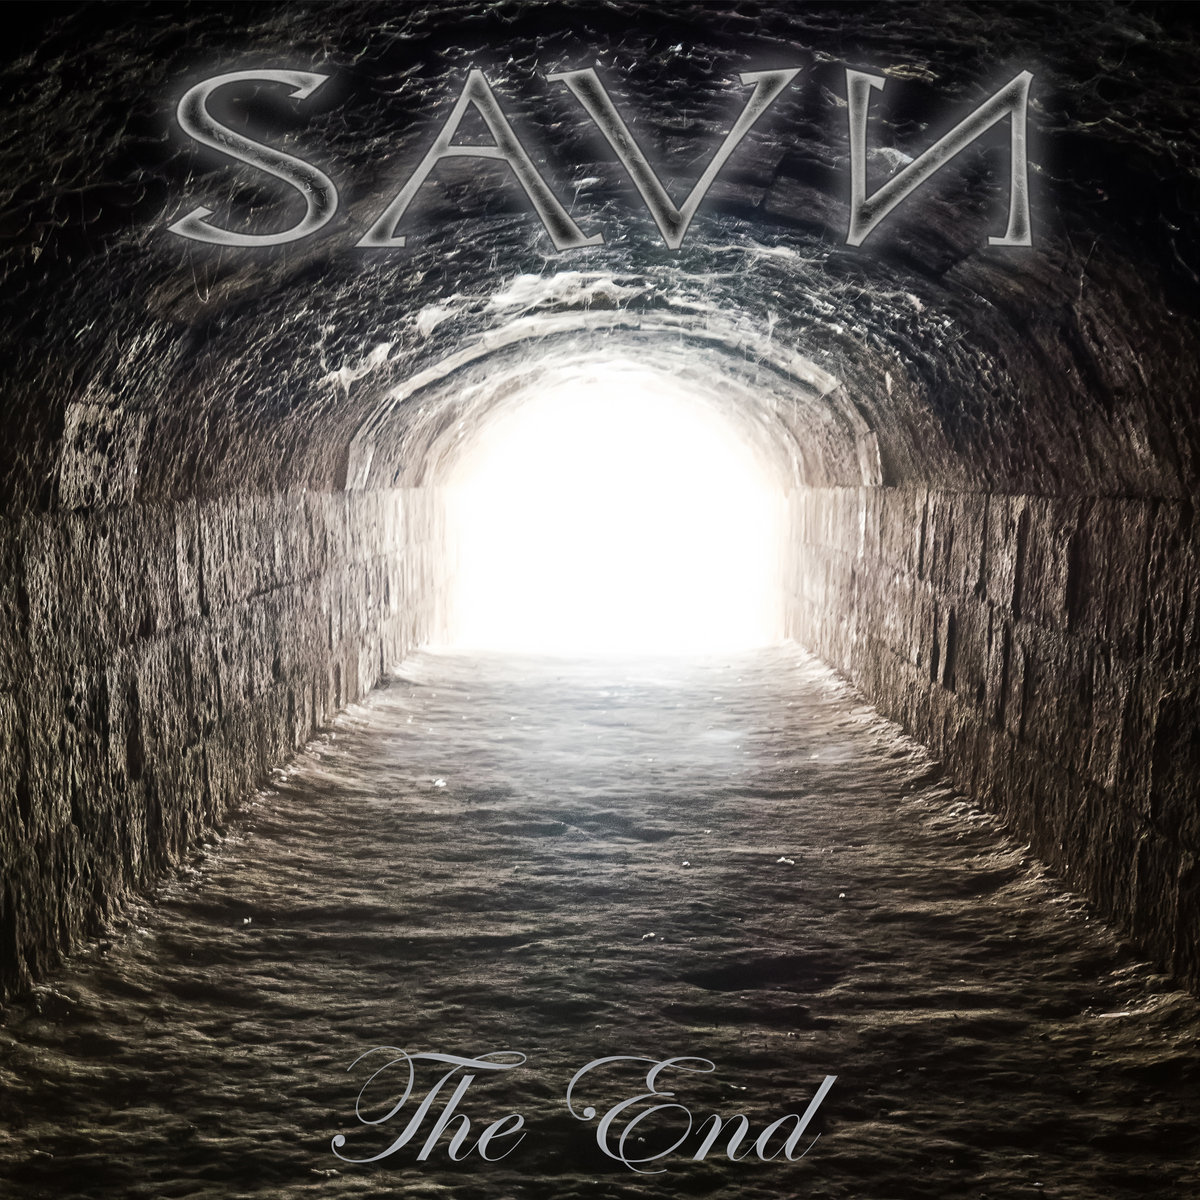 The end by Savn